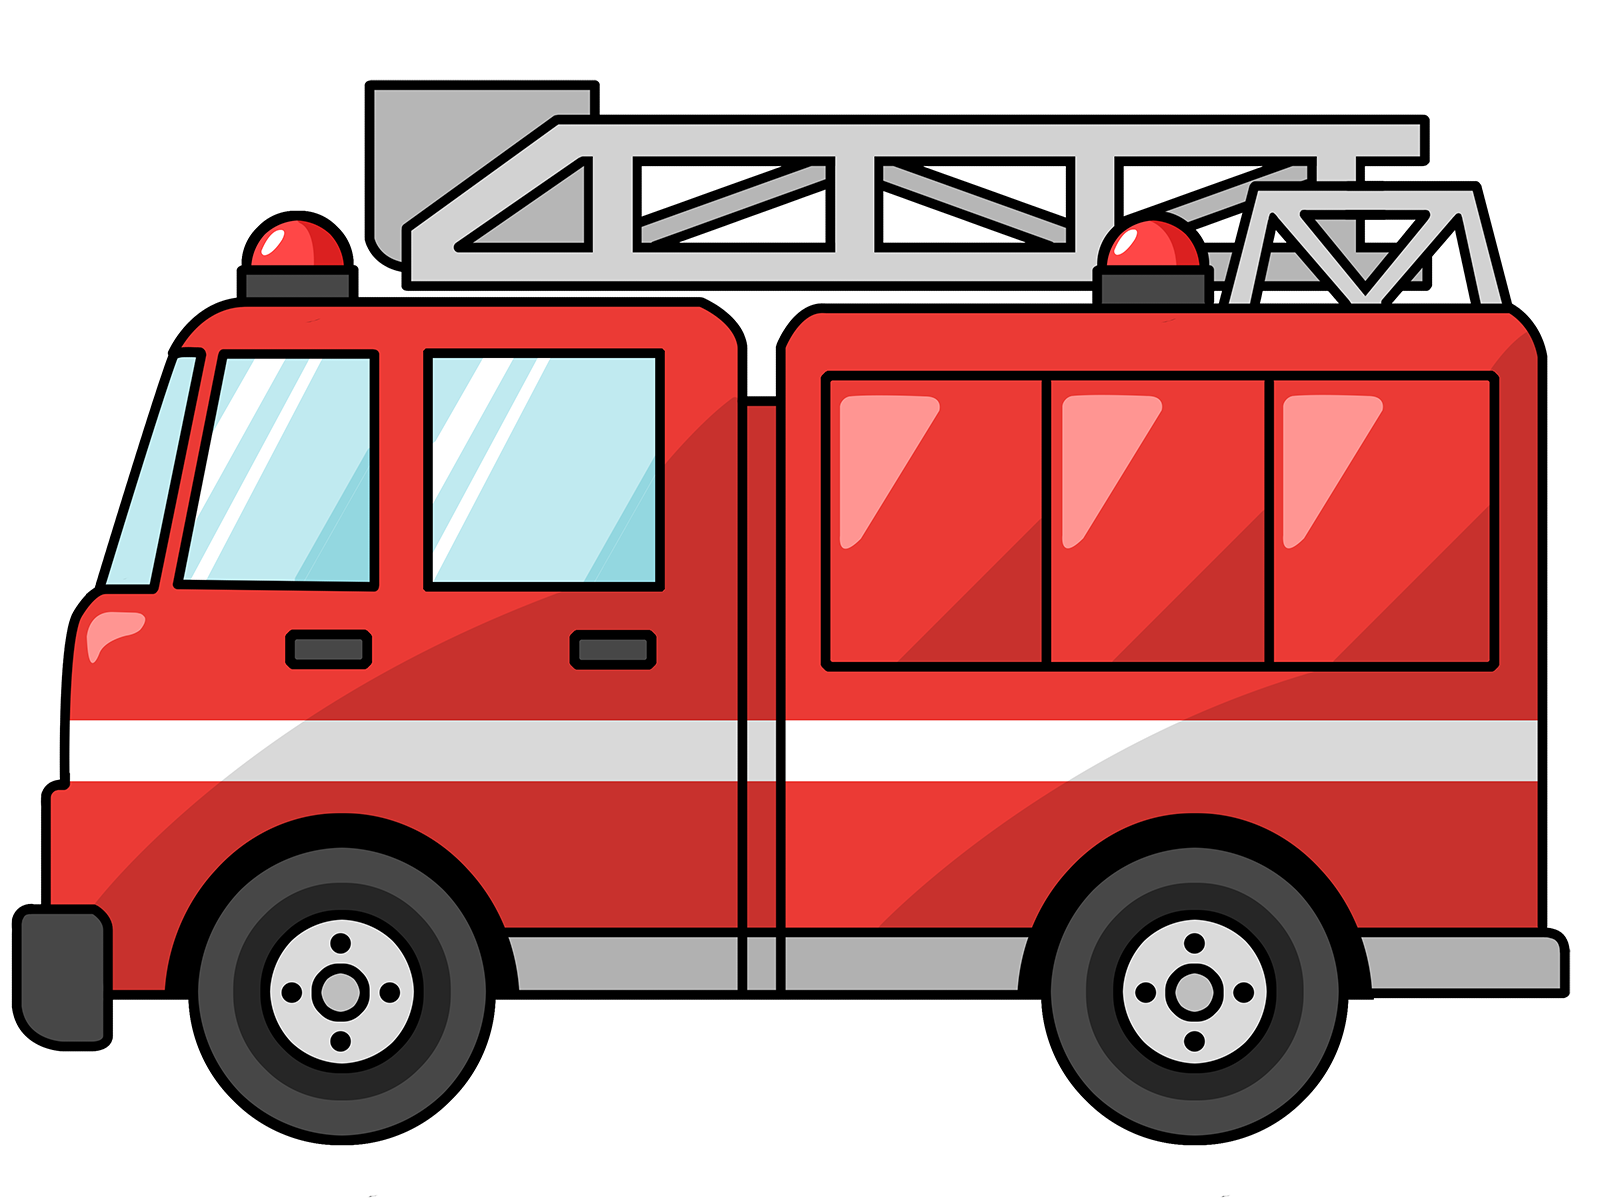 Motorcycle clipart cartoon character. Fire truck panda free